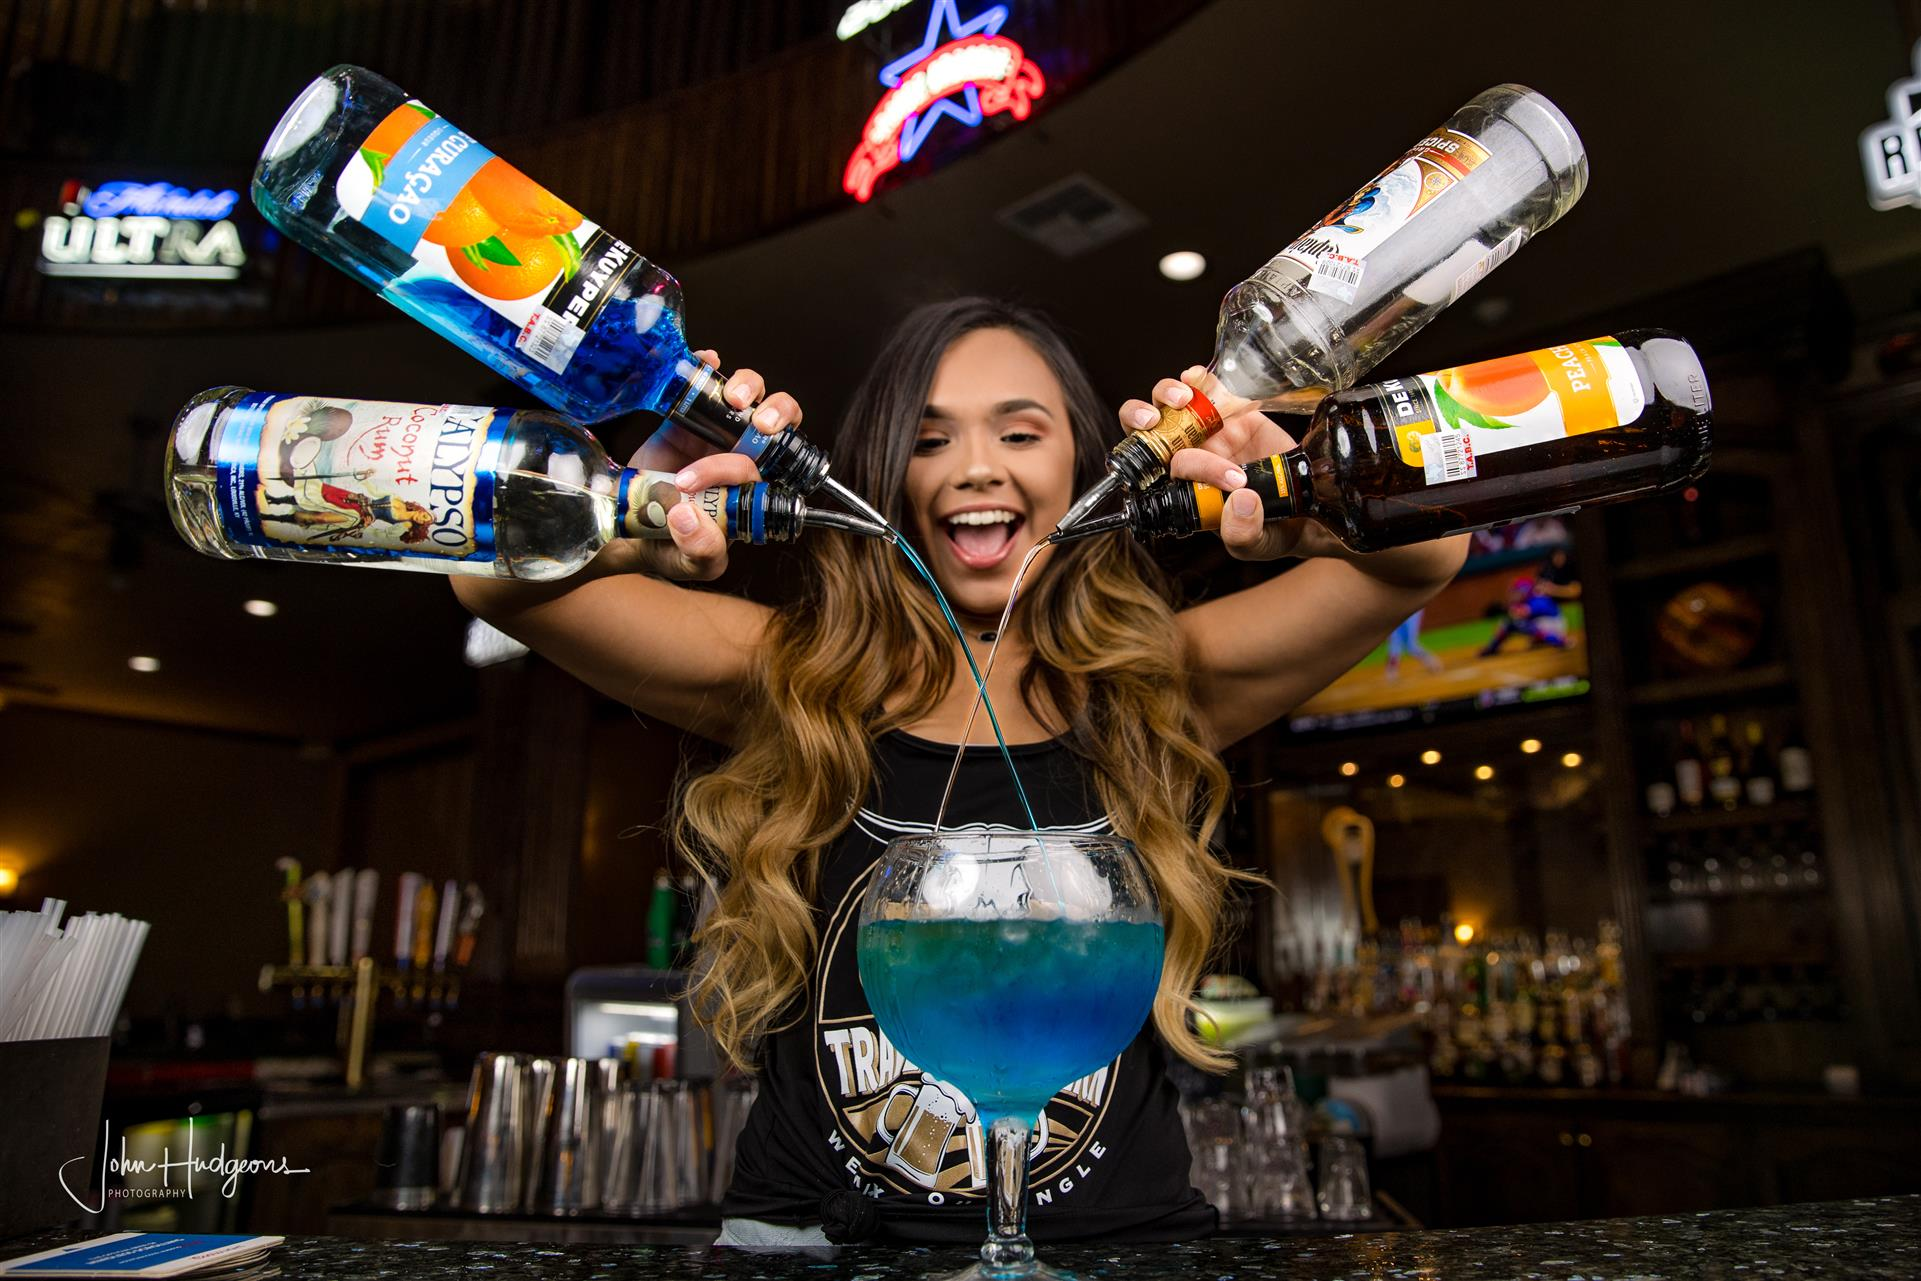 girl with 4 bottles in her hands pouring drinks